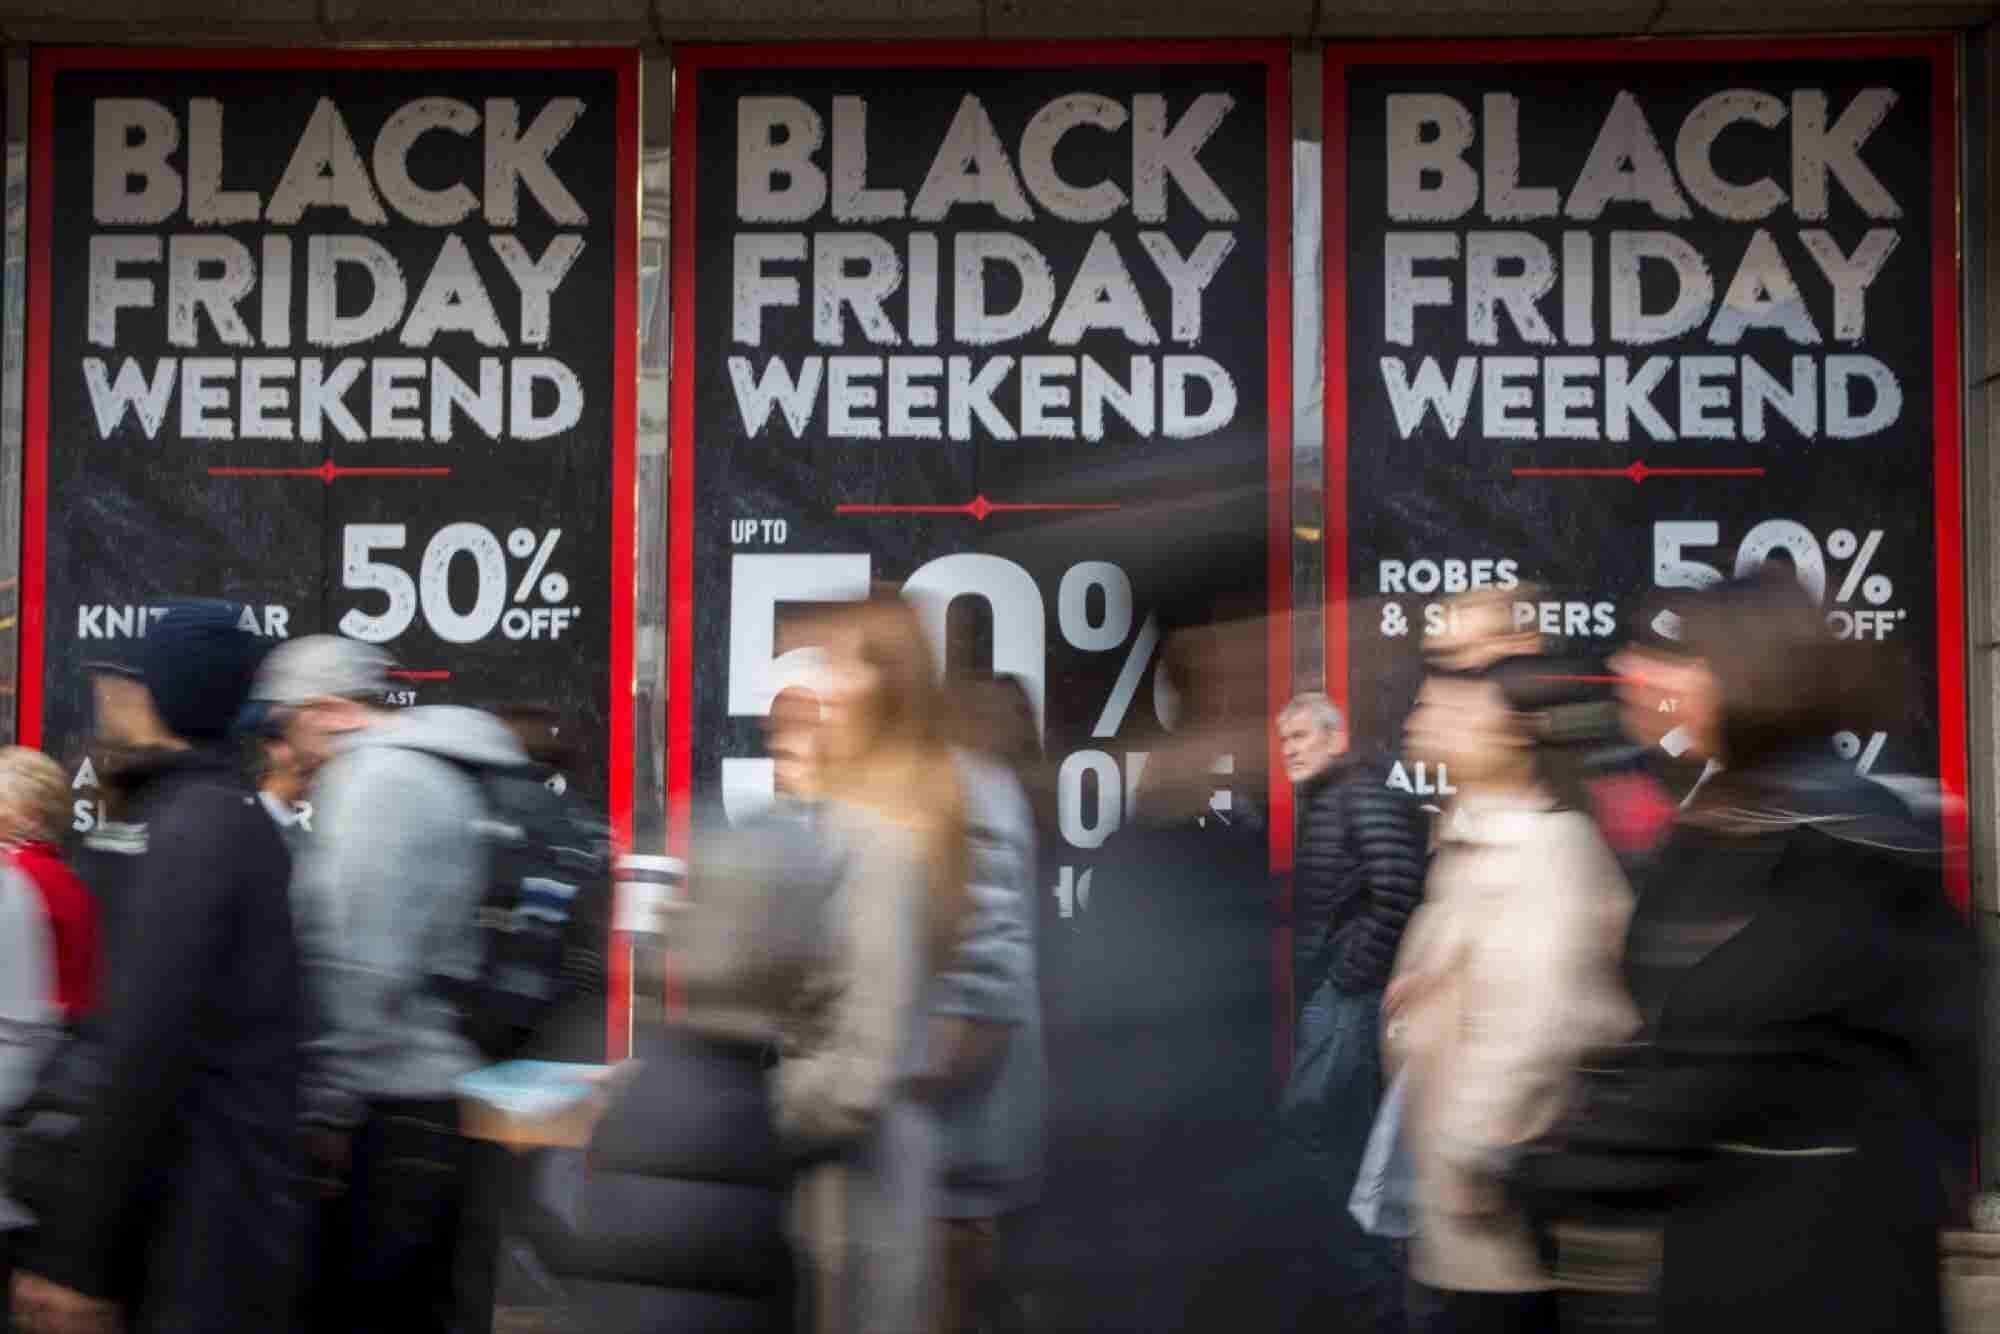 Were Stores or Mobile Sales More Successful on This Year's Black Friday?